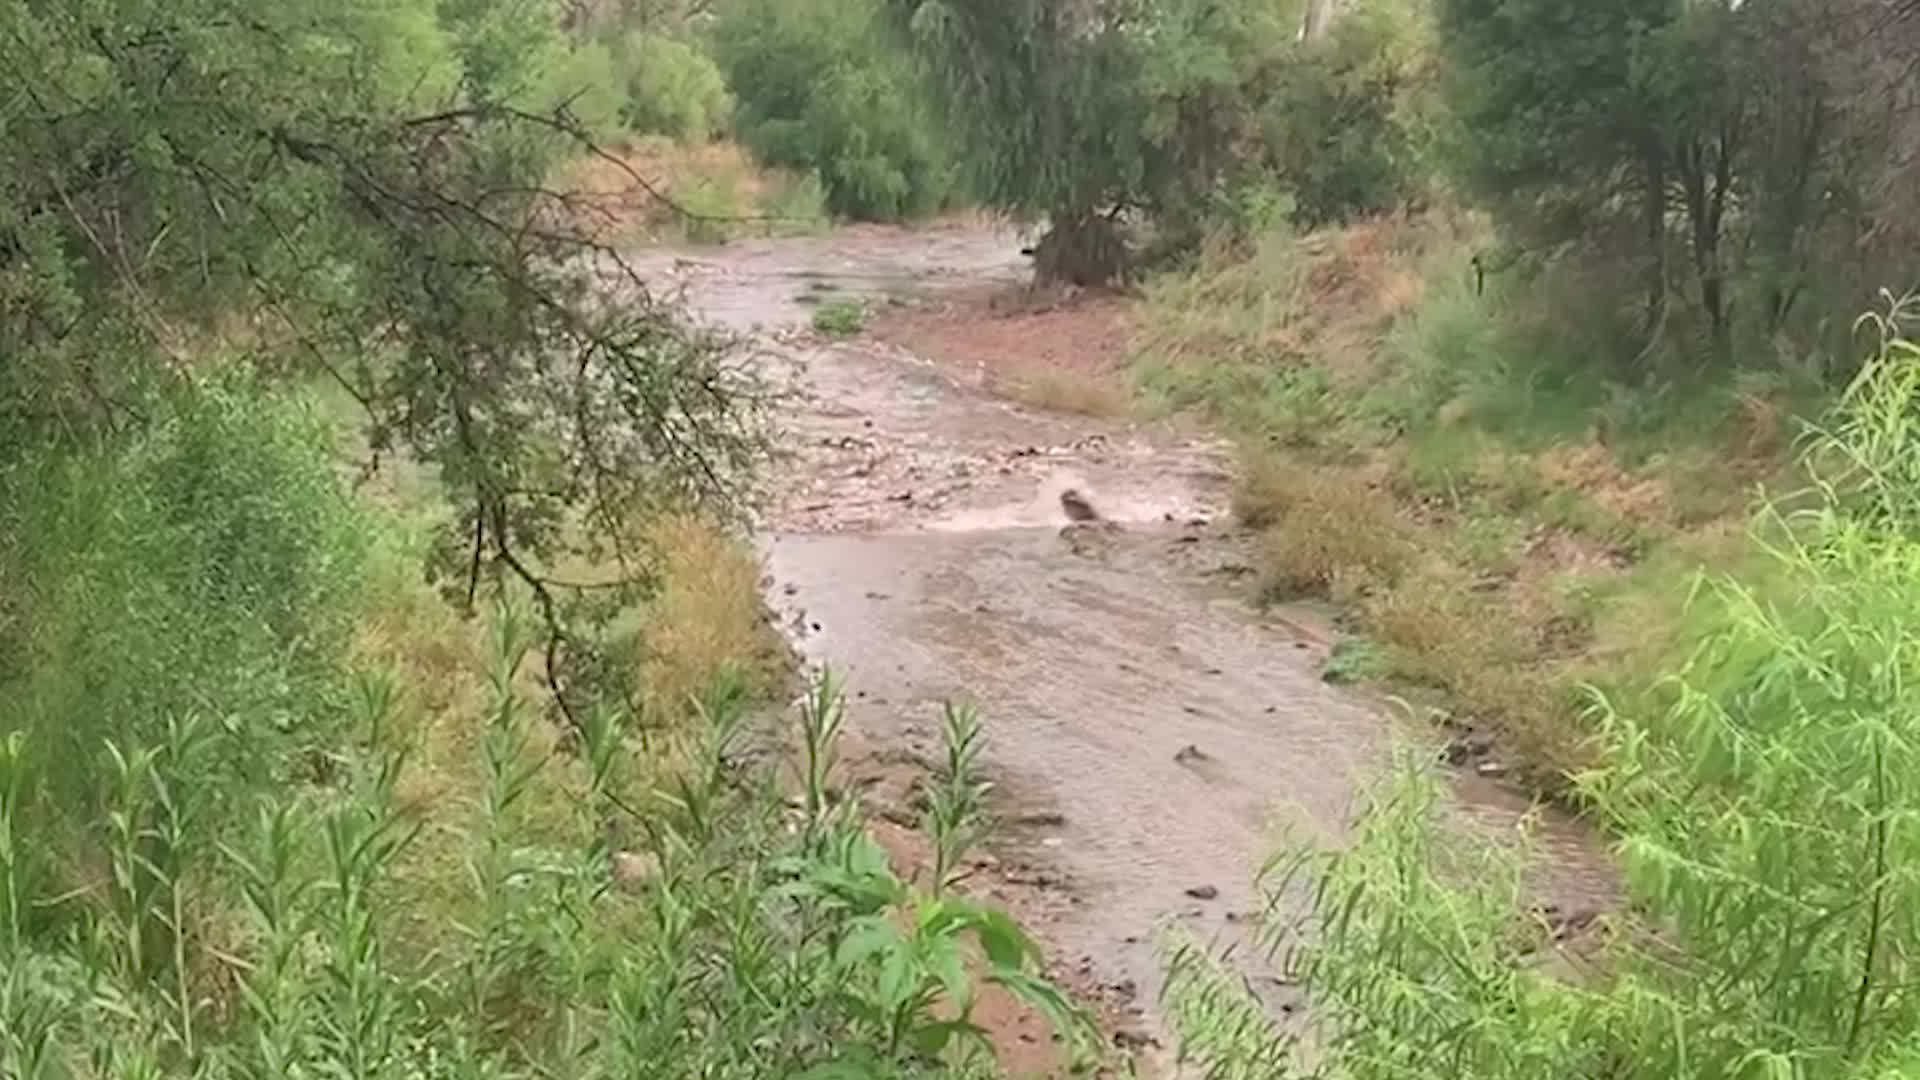 A flash flood was caught on camera rushing down a creek near Rio Rico, Arizona. During the summer, flash flooding of a dry creek bed is a common occurrence in the Desert Southwest.